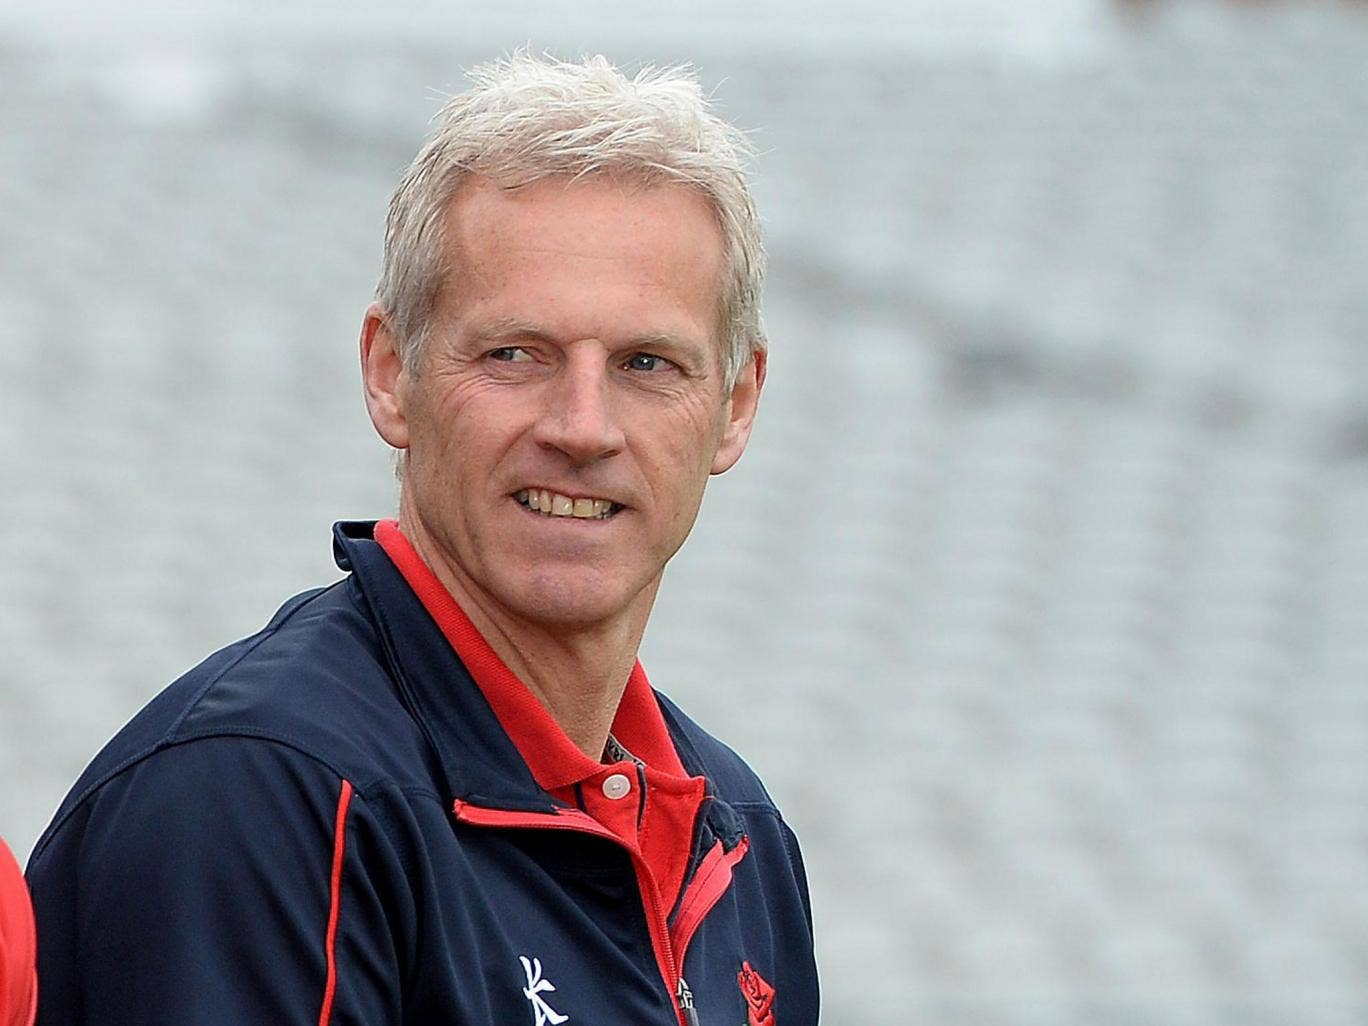 Peter Moores was sacked as England coach in 2009 after falling out with captain Kevin Pietersen